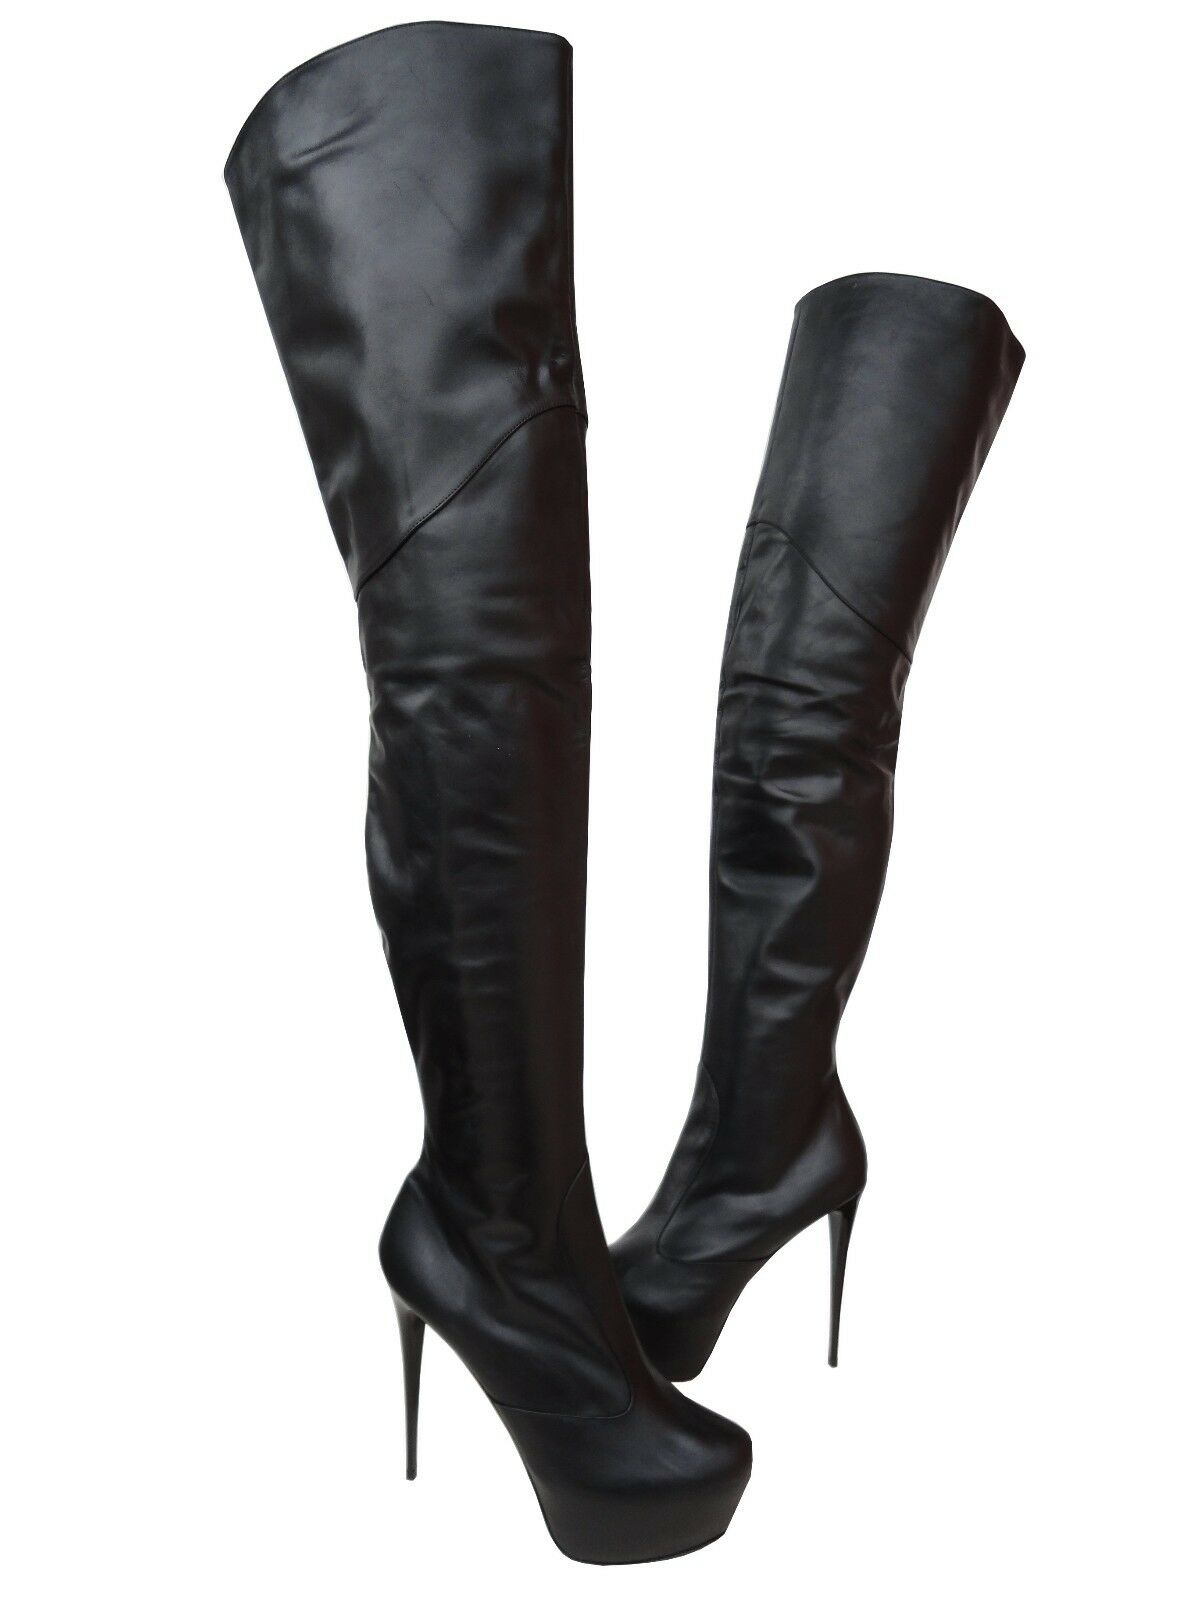 CQ COUTURE PLATFORM OVERKNEE BOOTS STIEFEL STIVALI SHOES LEATHER BLACK black 43